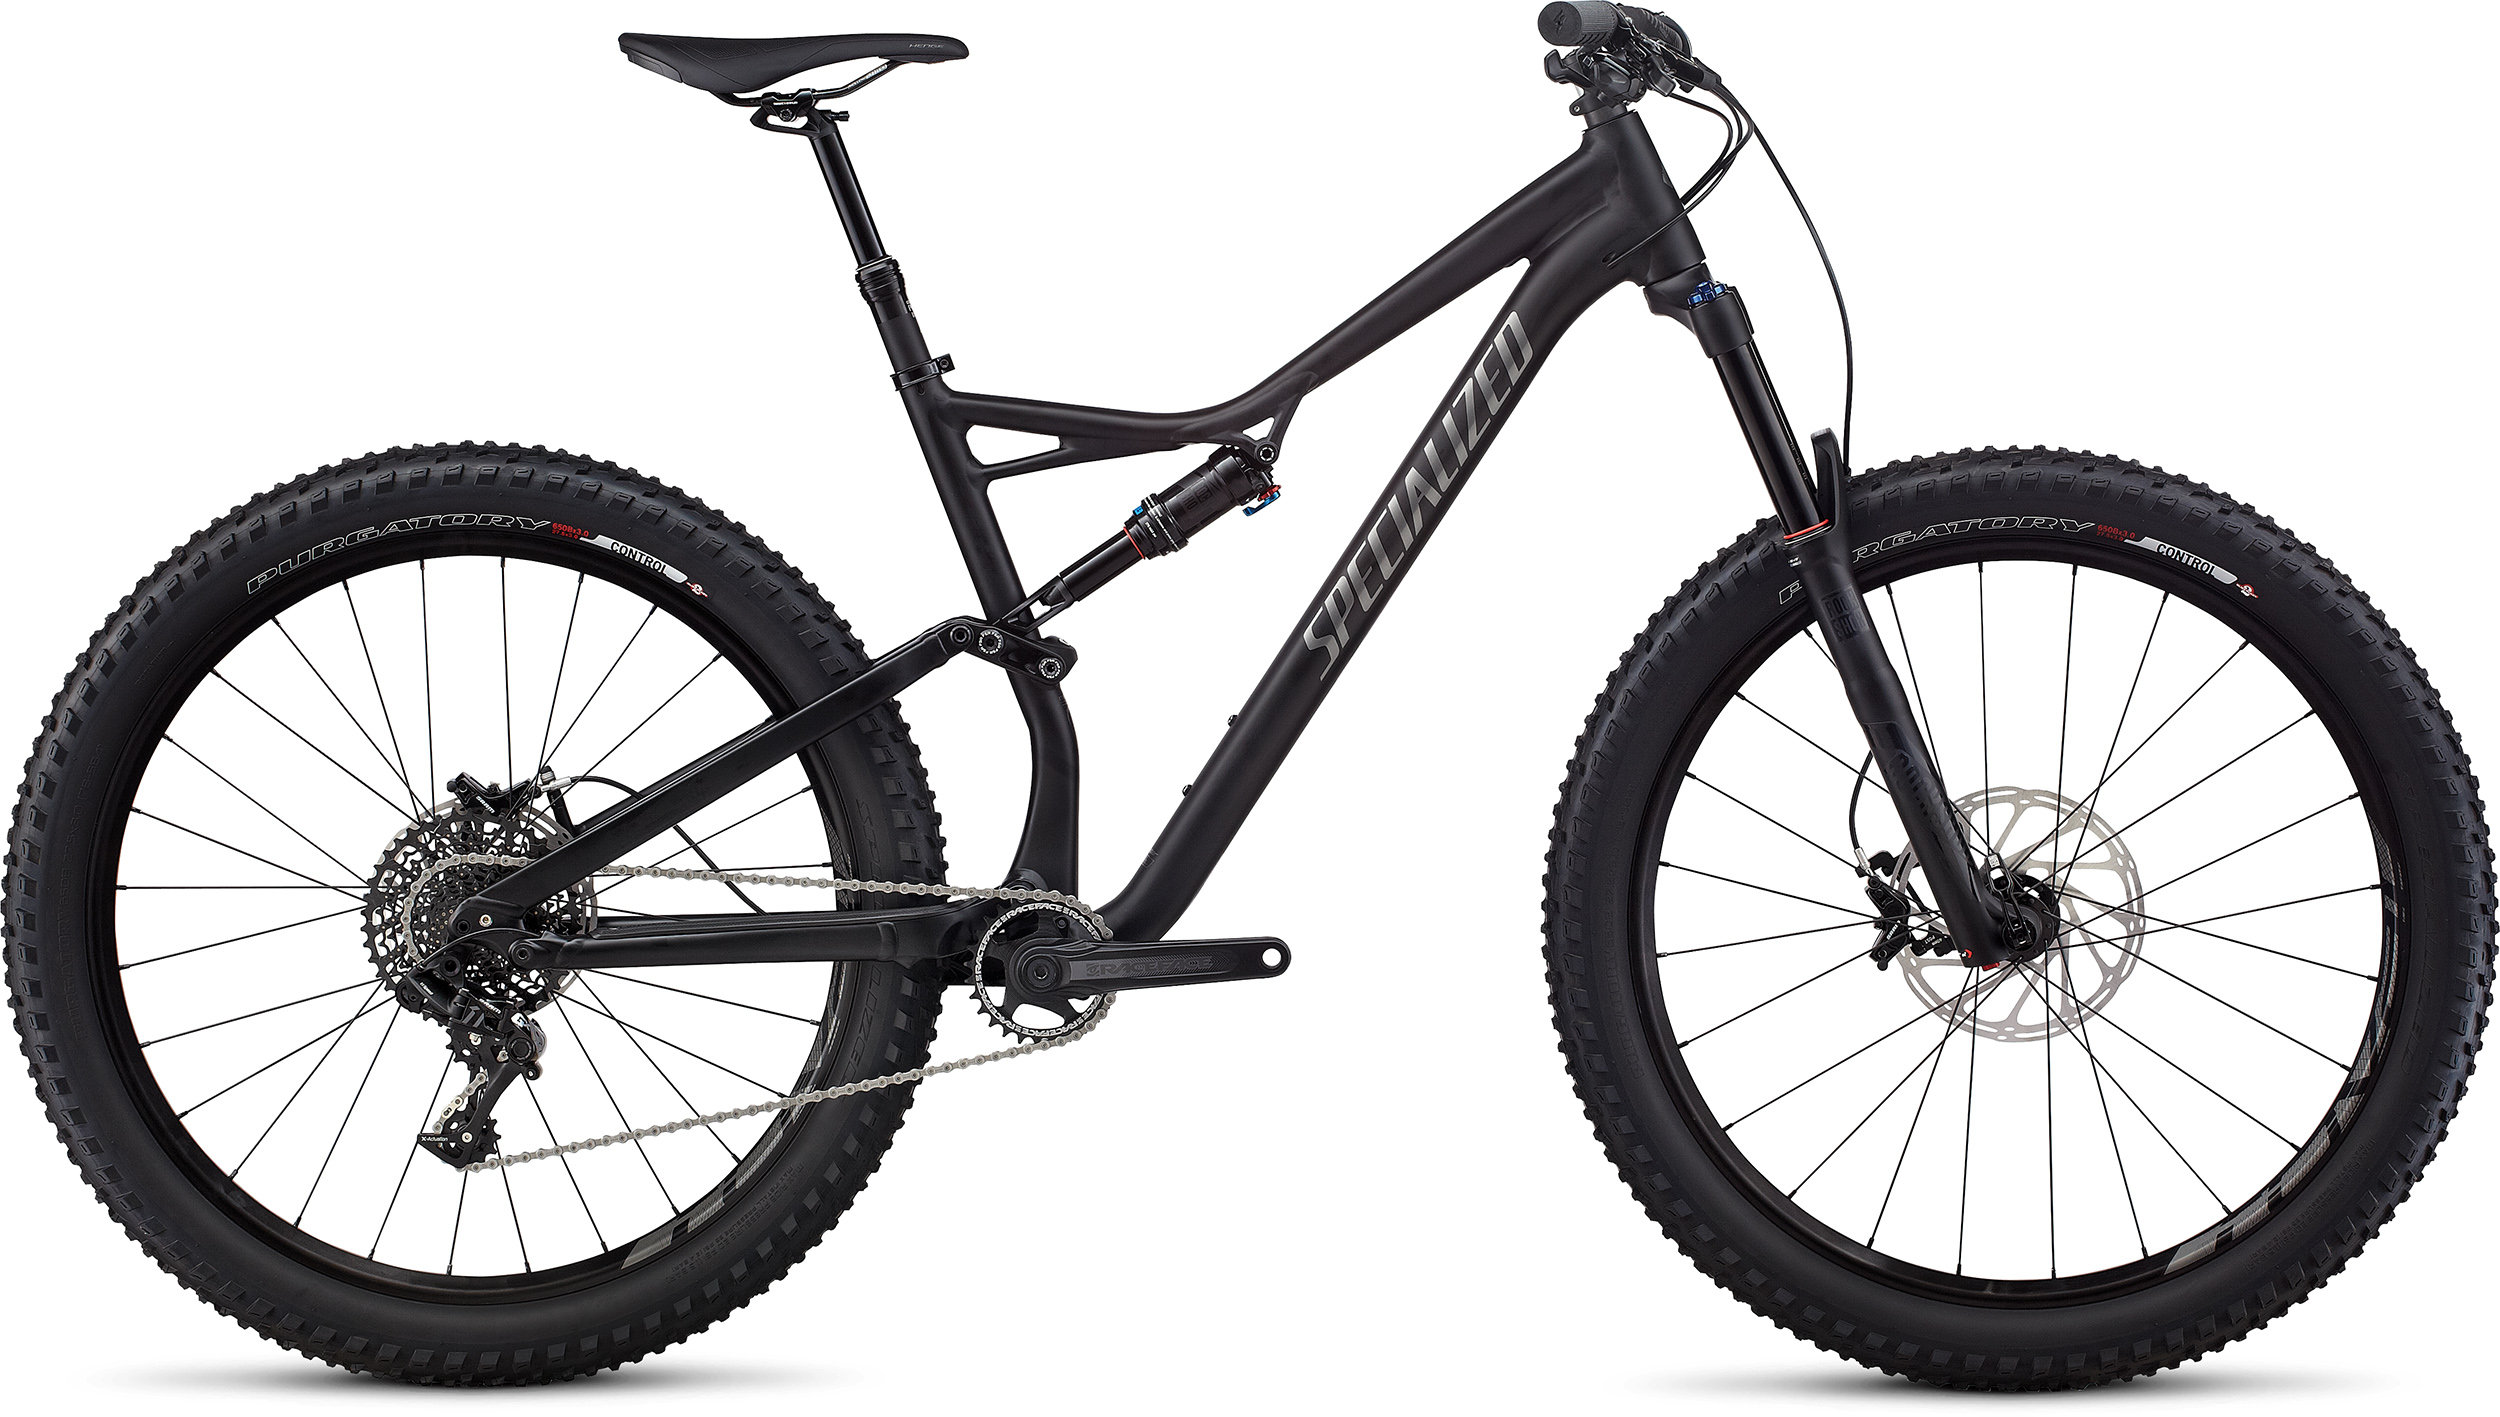 SPECIALIZED SJ FSR COMP 6FATTIE BLK/CHAR L - Bike Zone